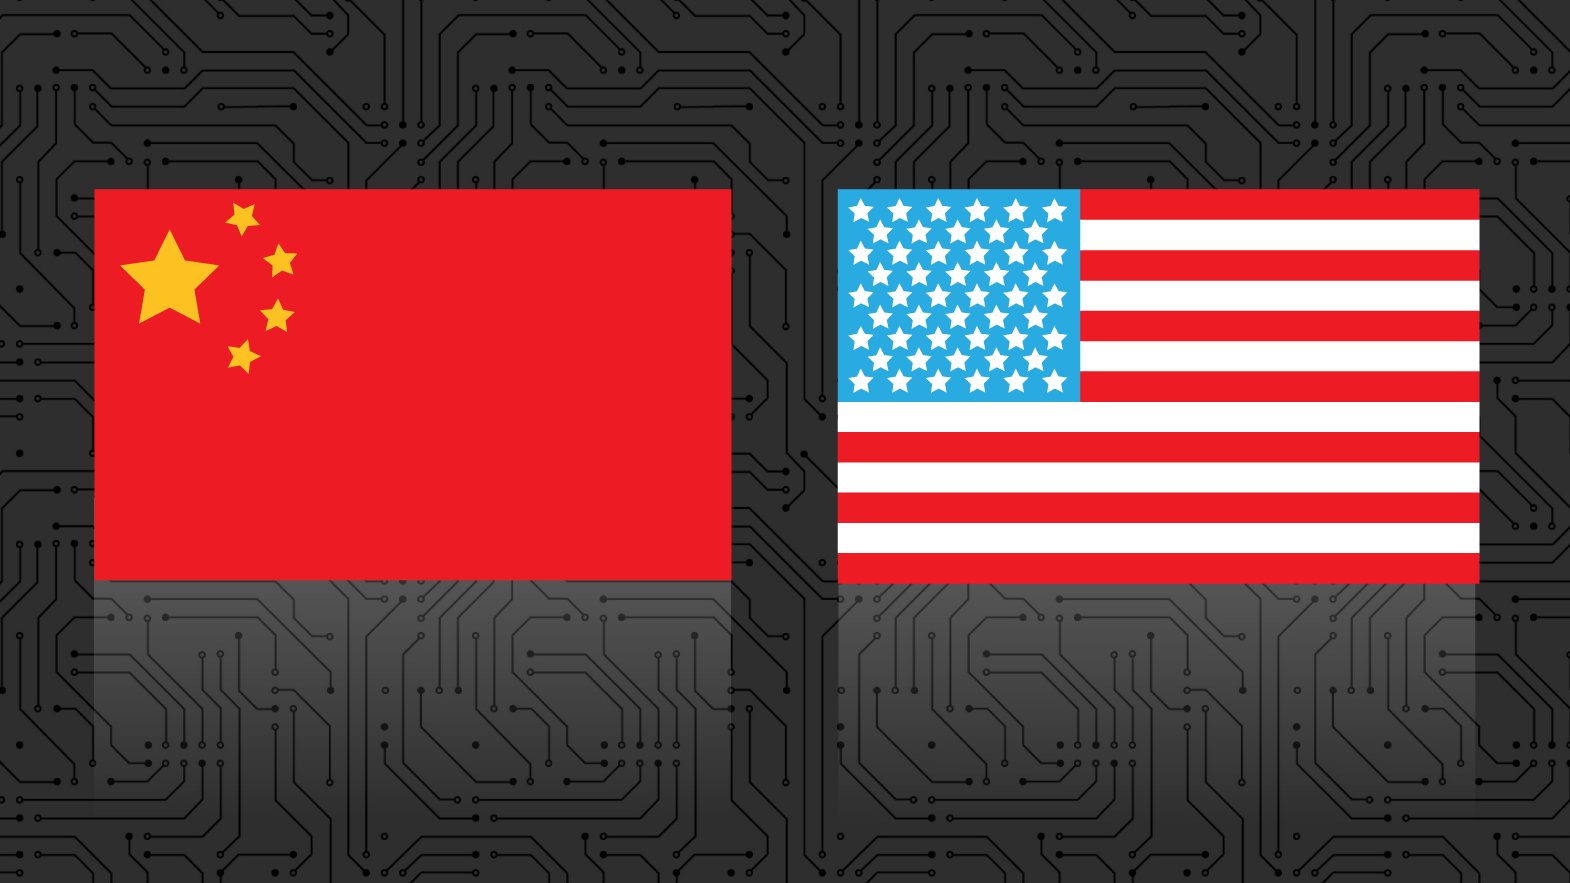 The US may have just pulled even with China in the race to